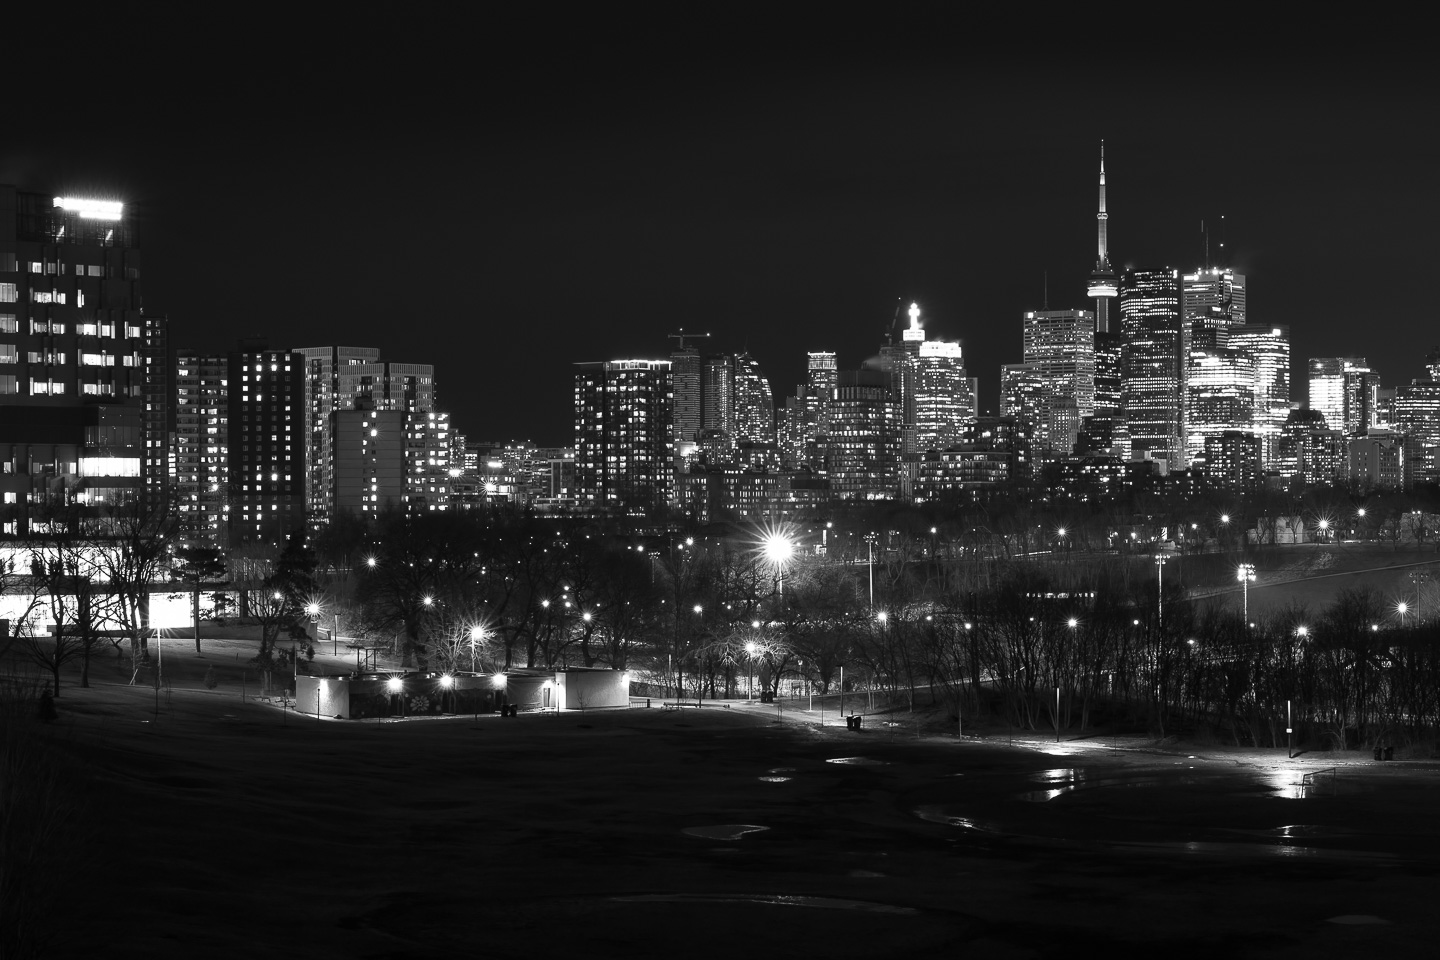 Toronto-skyline-Riverdale-Park-panorama-black-and-white_v1.jpg